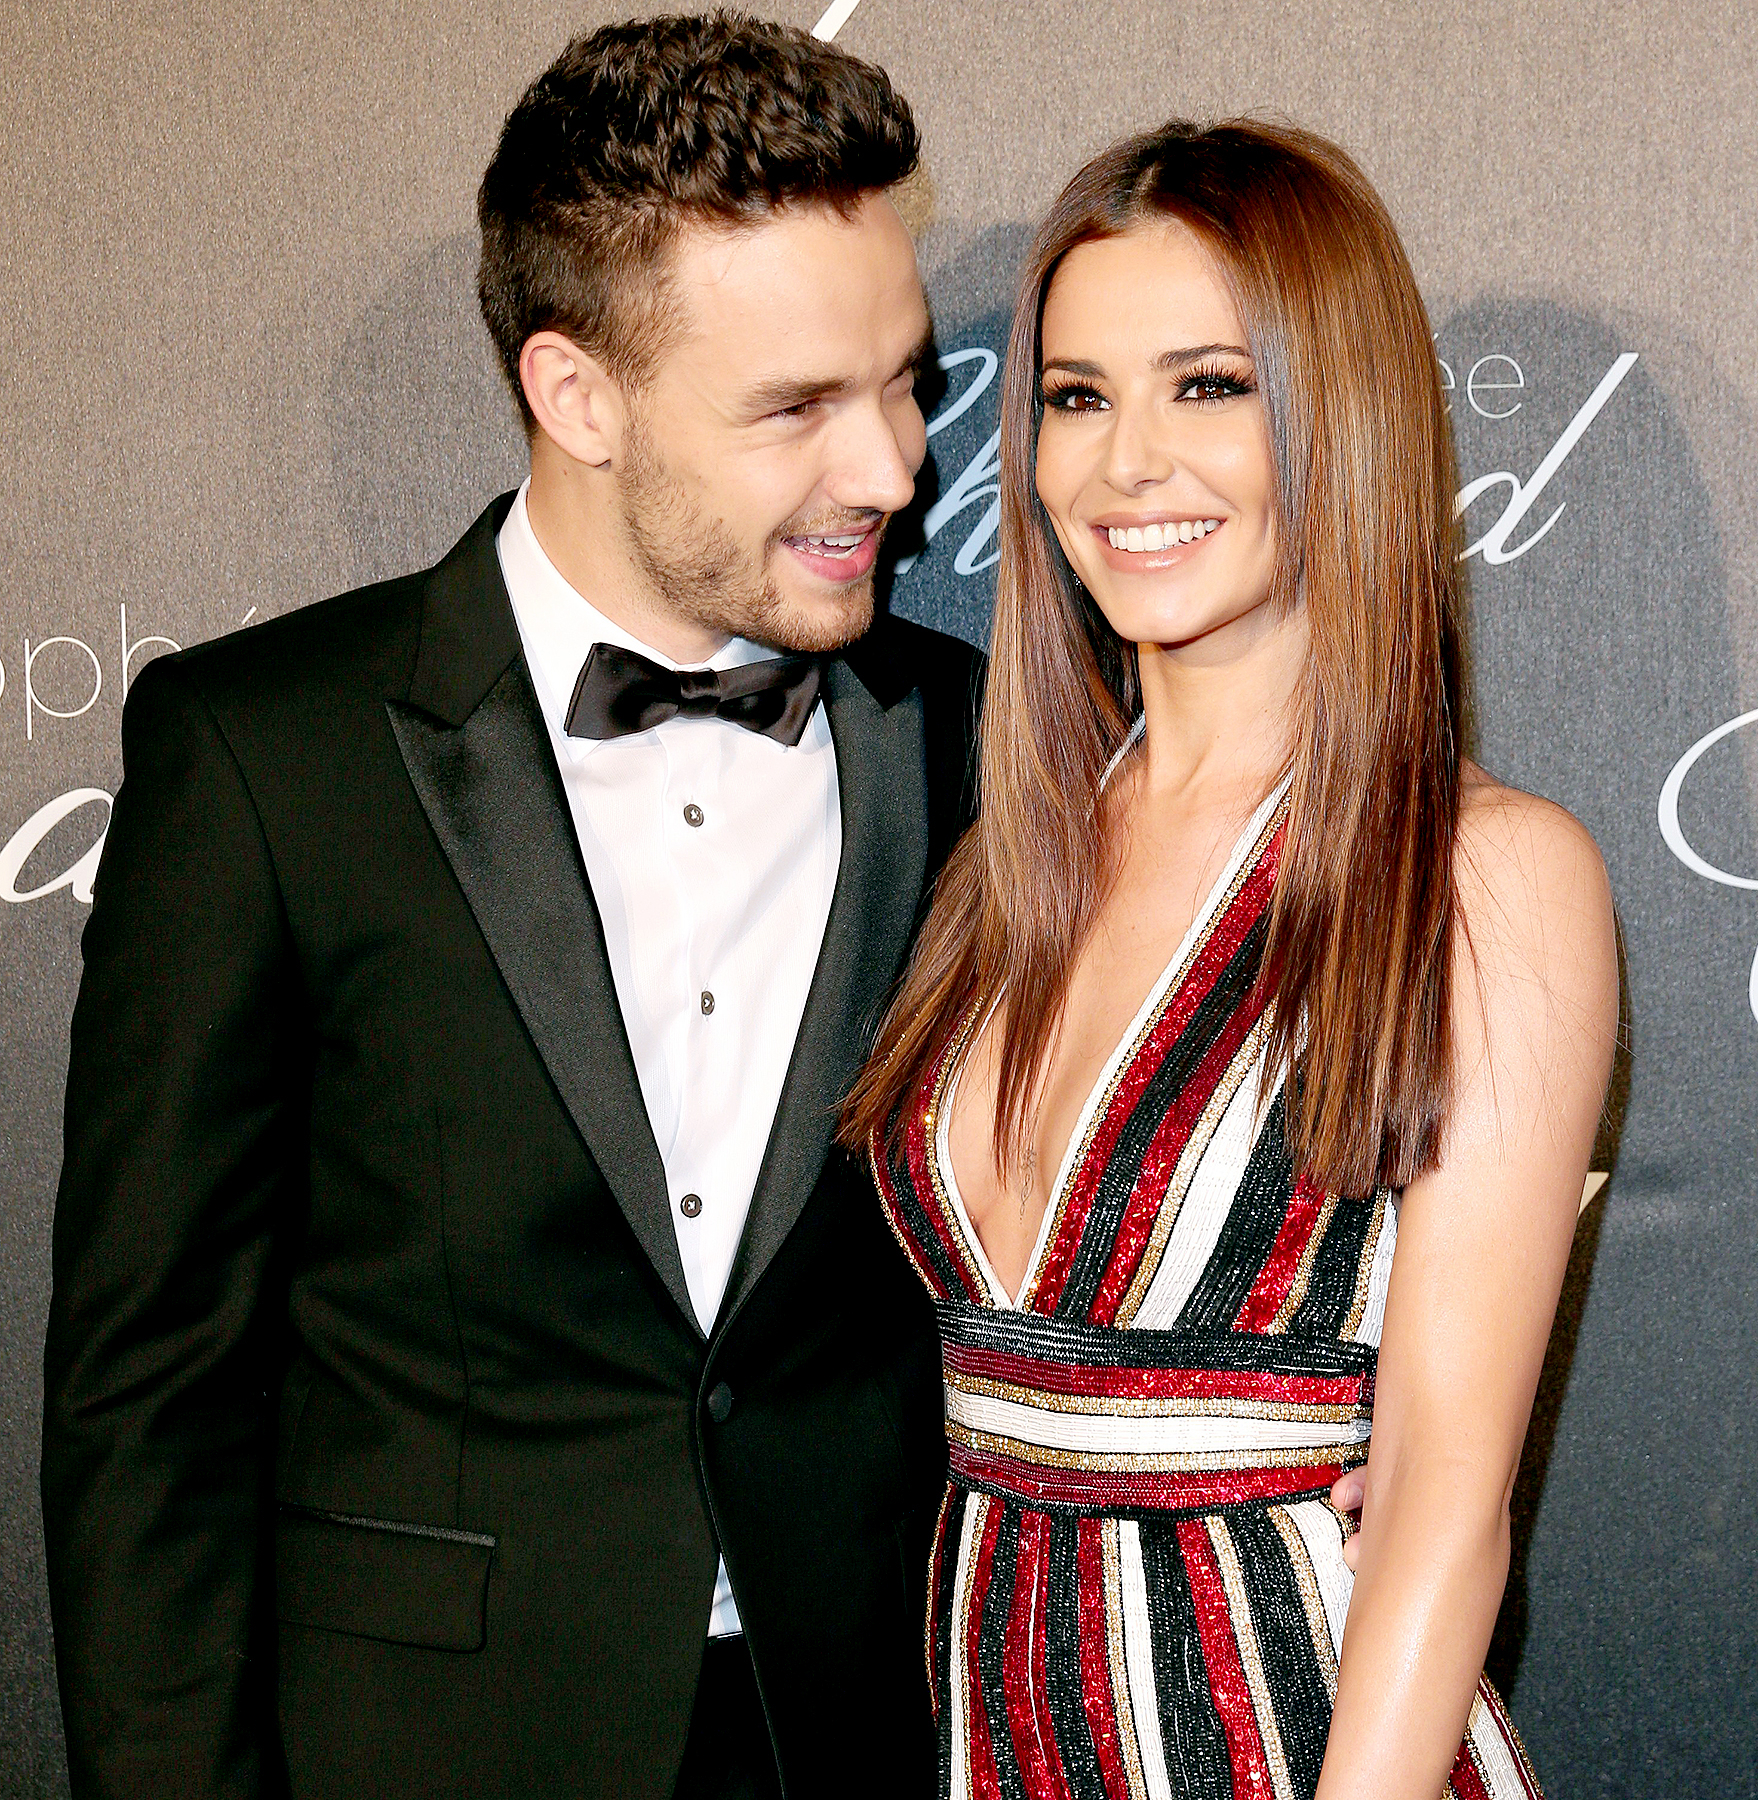 Cheryl Cole and Liam Payne arrive at the Chopard Trophy Ceremony at the annual 69th Cannes Film Festival at Hotel Martinez on May 12, 2016 in Cannes, France.